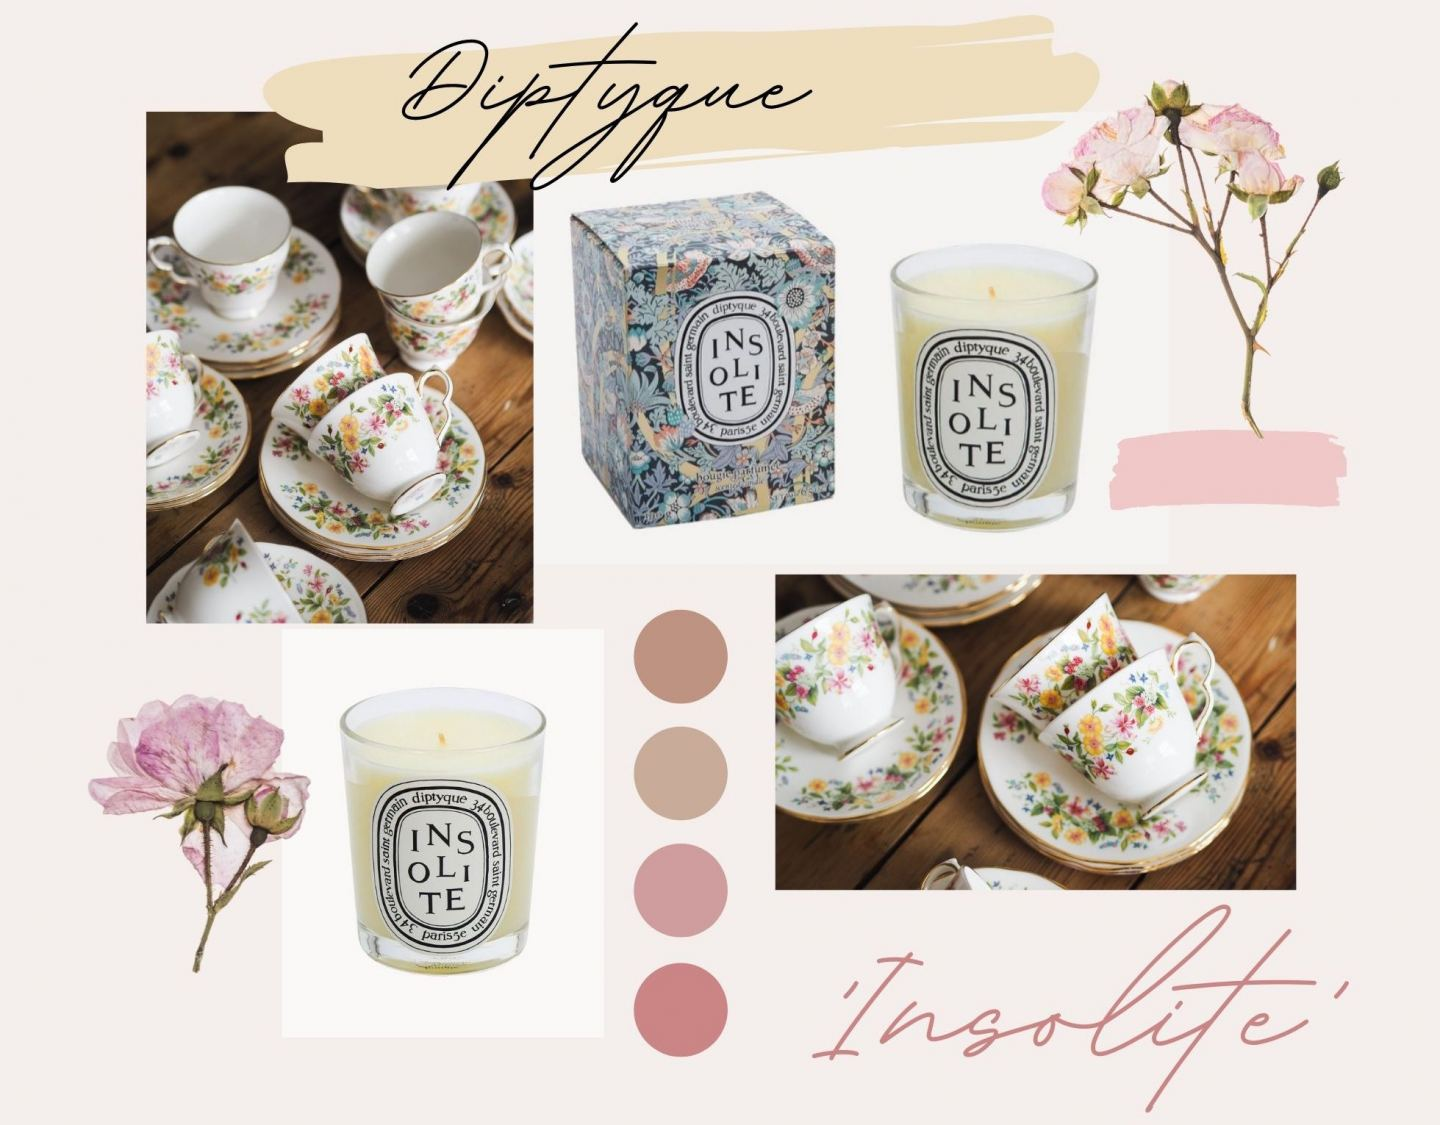 Diptyque 'Insolite' Limited Edition Candle